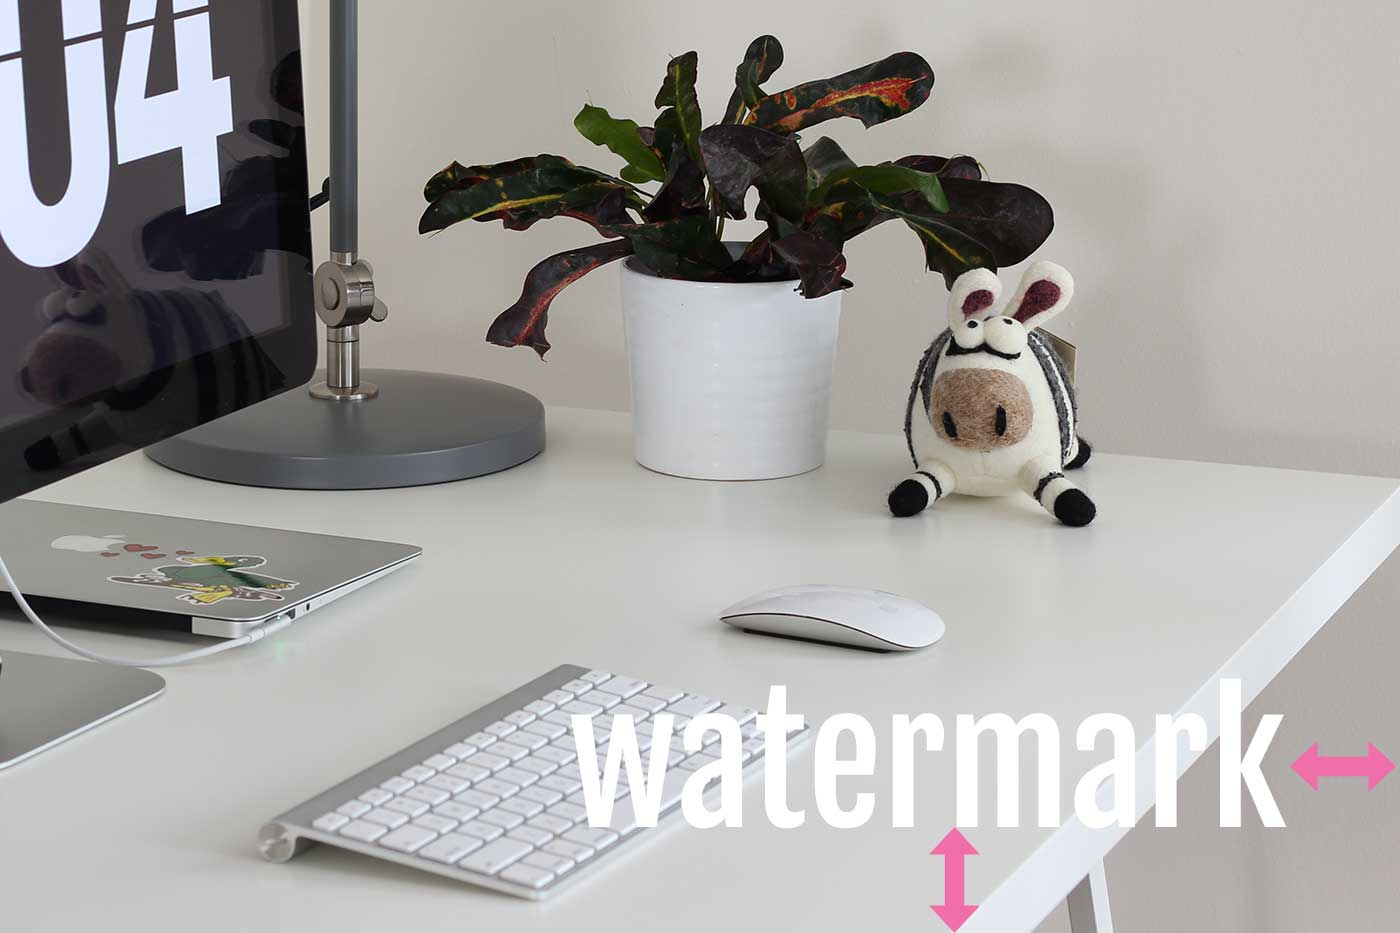 Use a healthy margin for watermarks so that people aren't as tempted to crop out your watermark